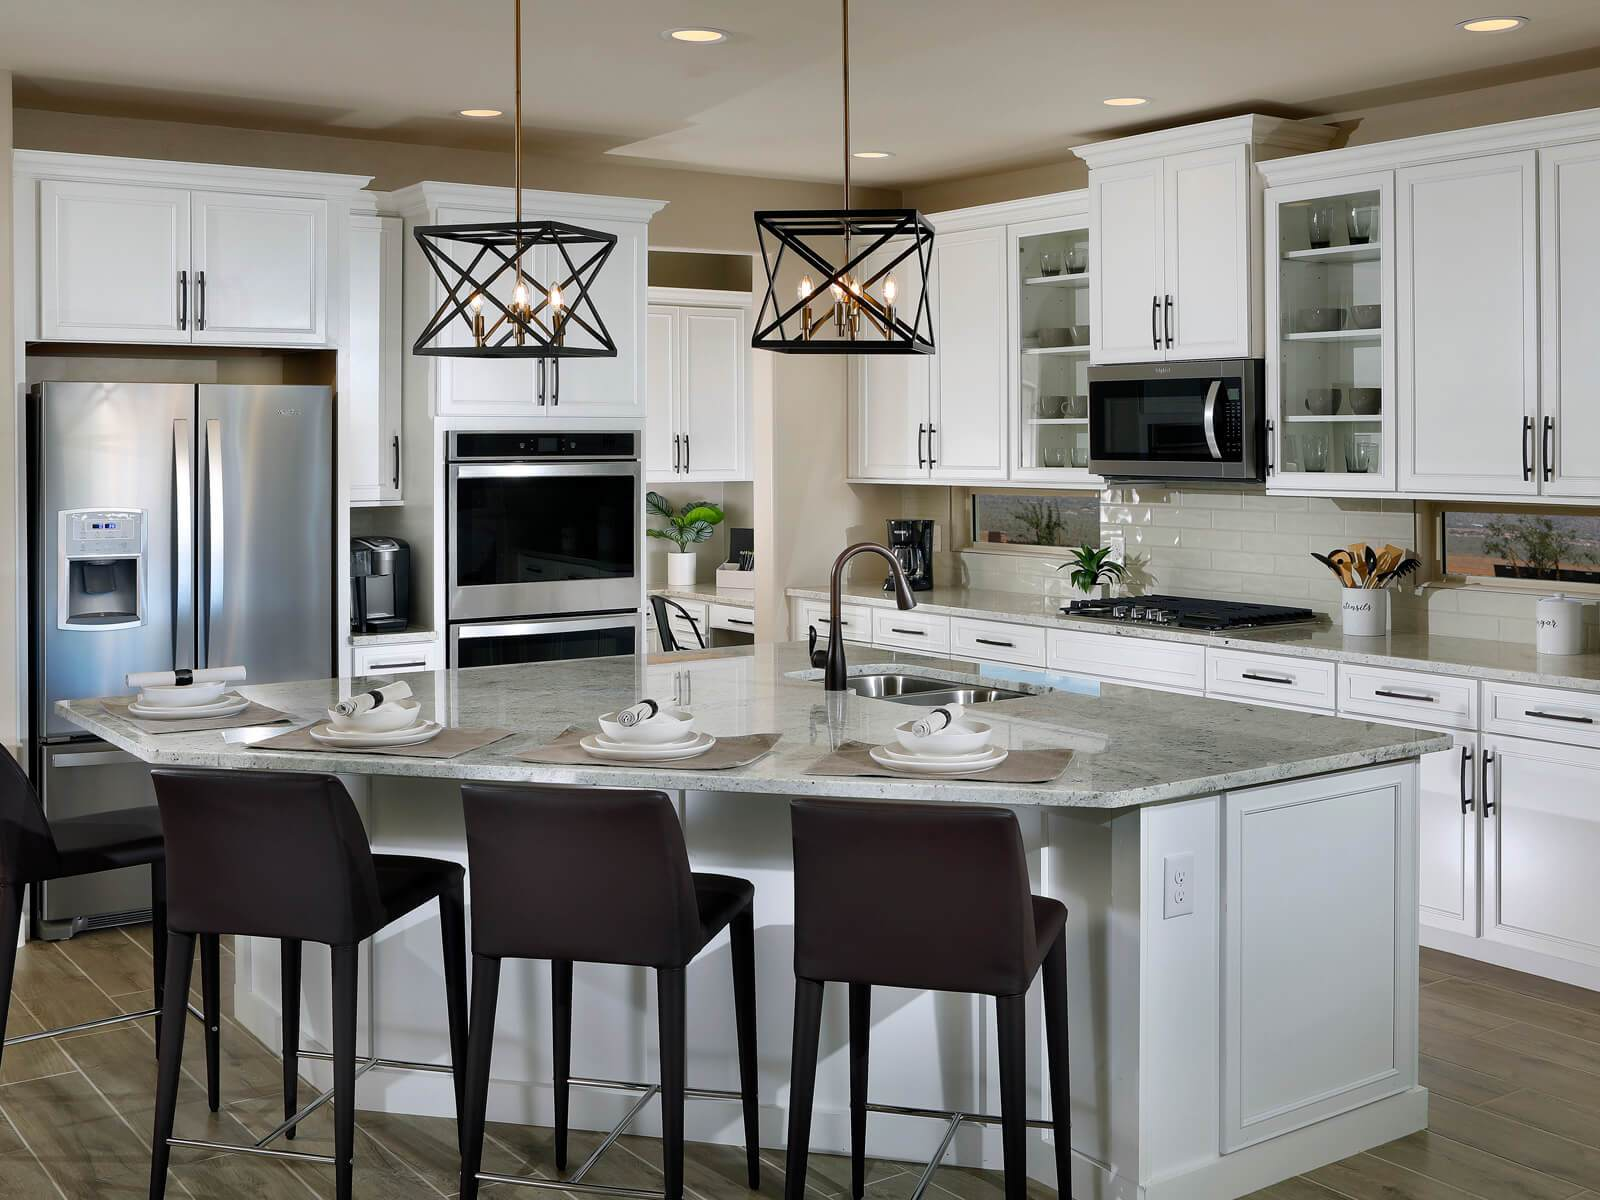 Kitchen featured in the Festival By Meritage Homes in Tucson, AZ